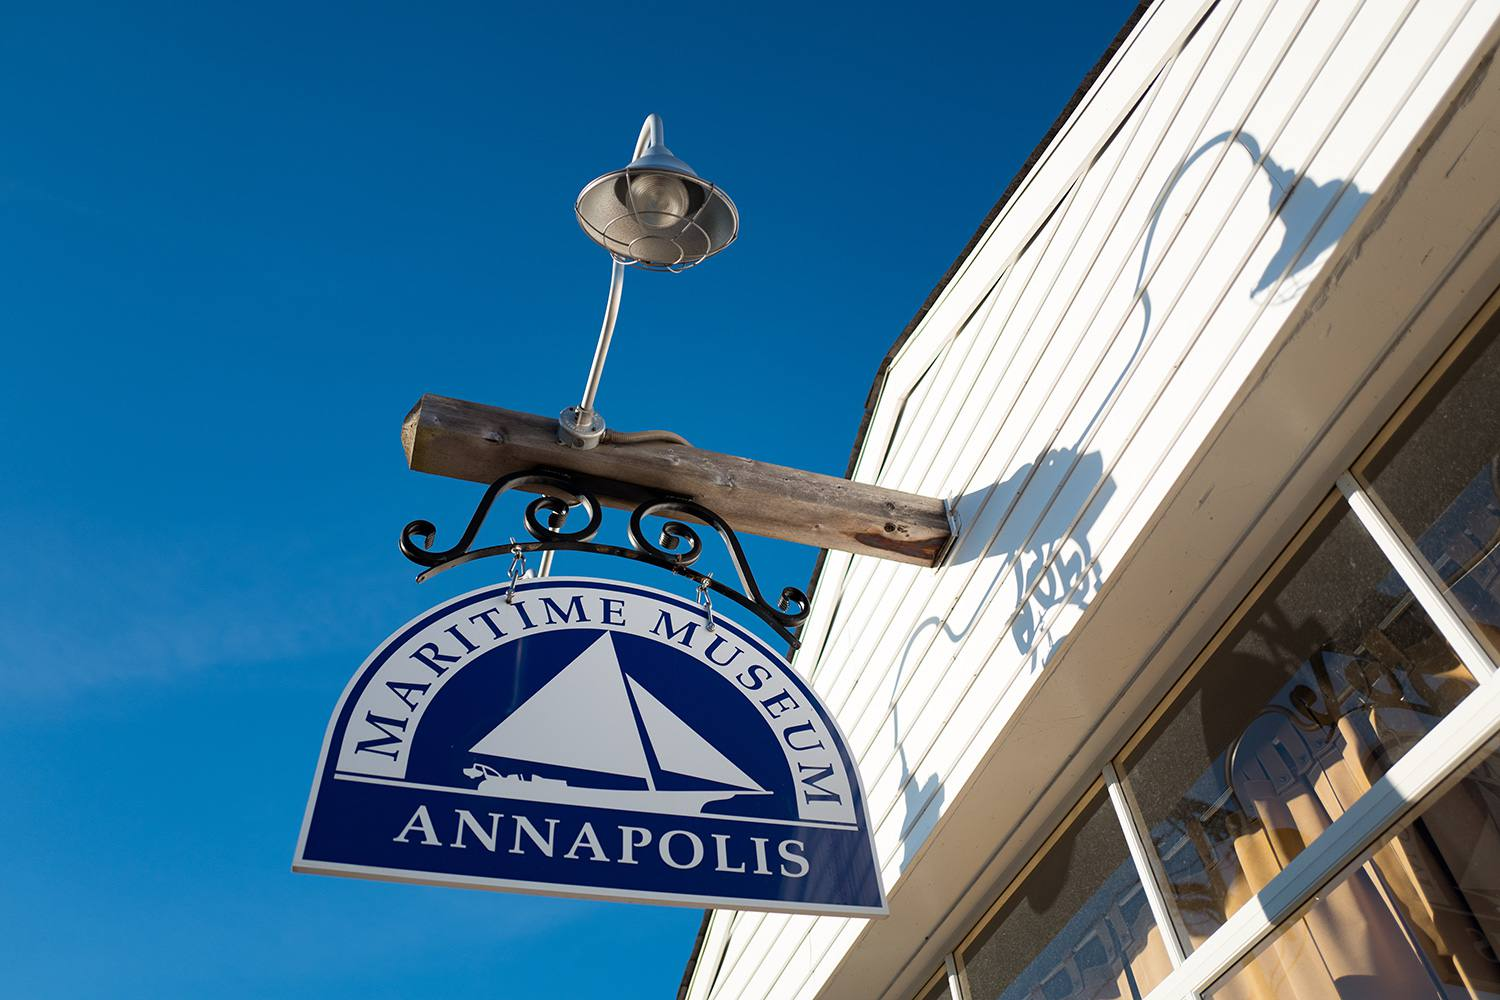 Signage for the Annapolis Maritime Museum